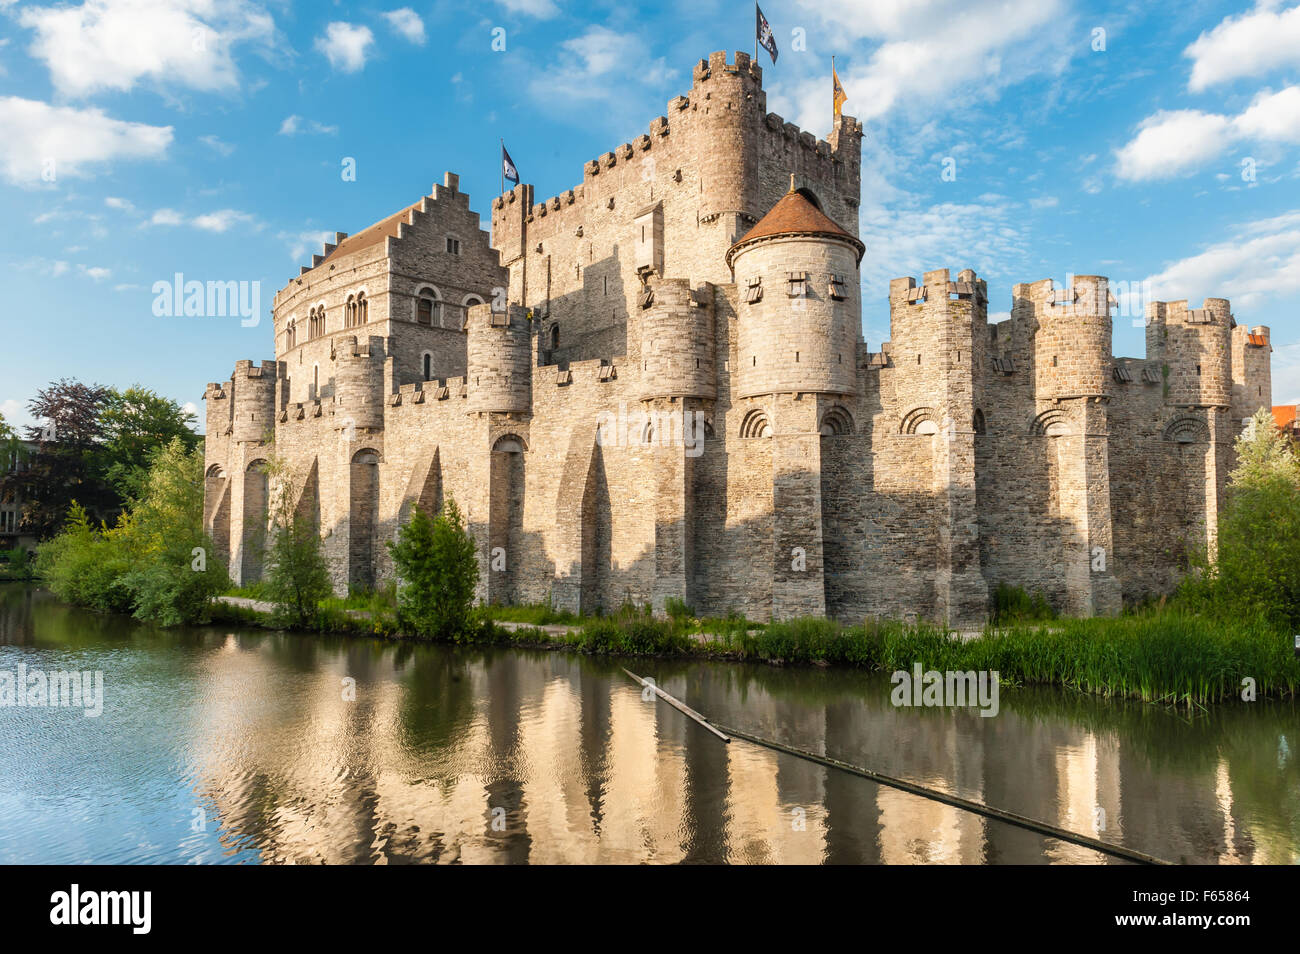 Medieval castle Gravensteen (Castle of the Counts) in Ghent, Belgium. - Stock Image